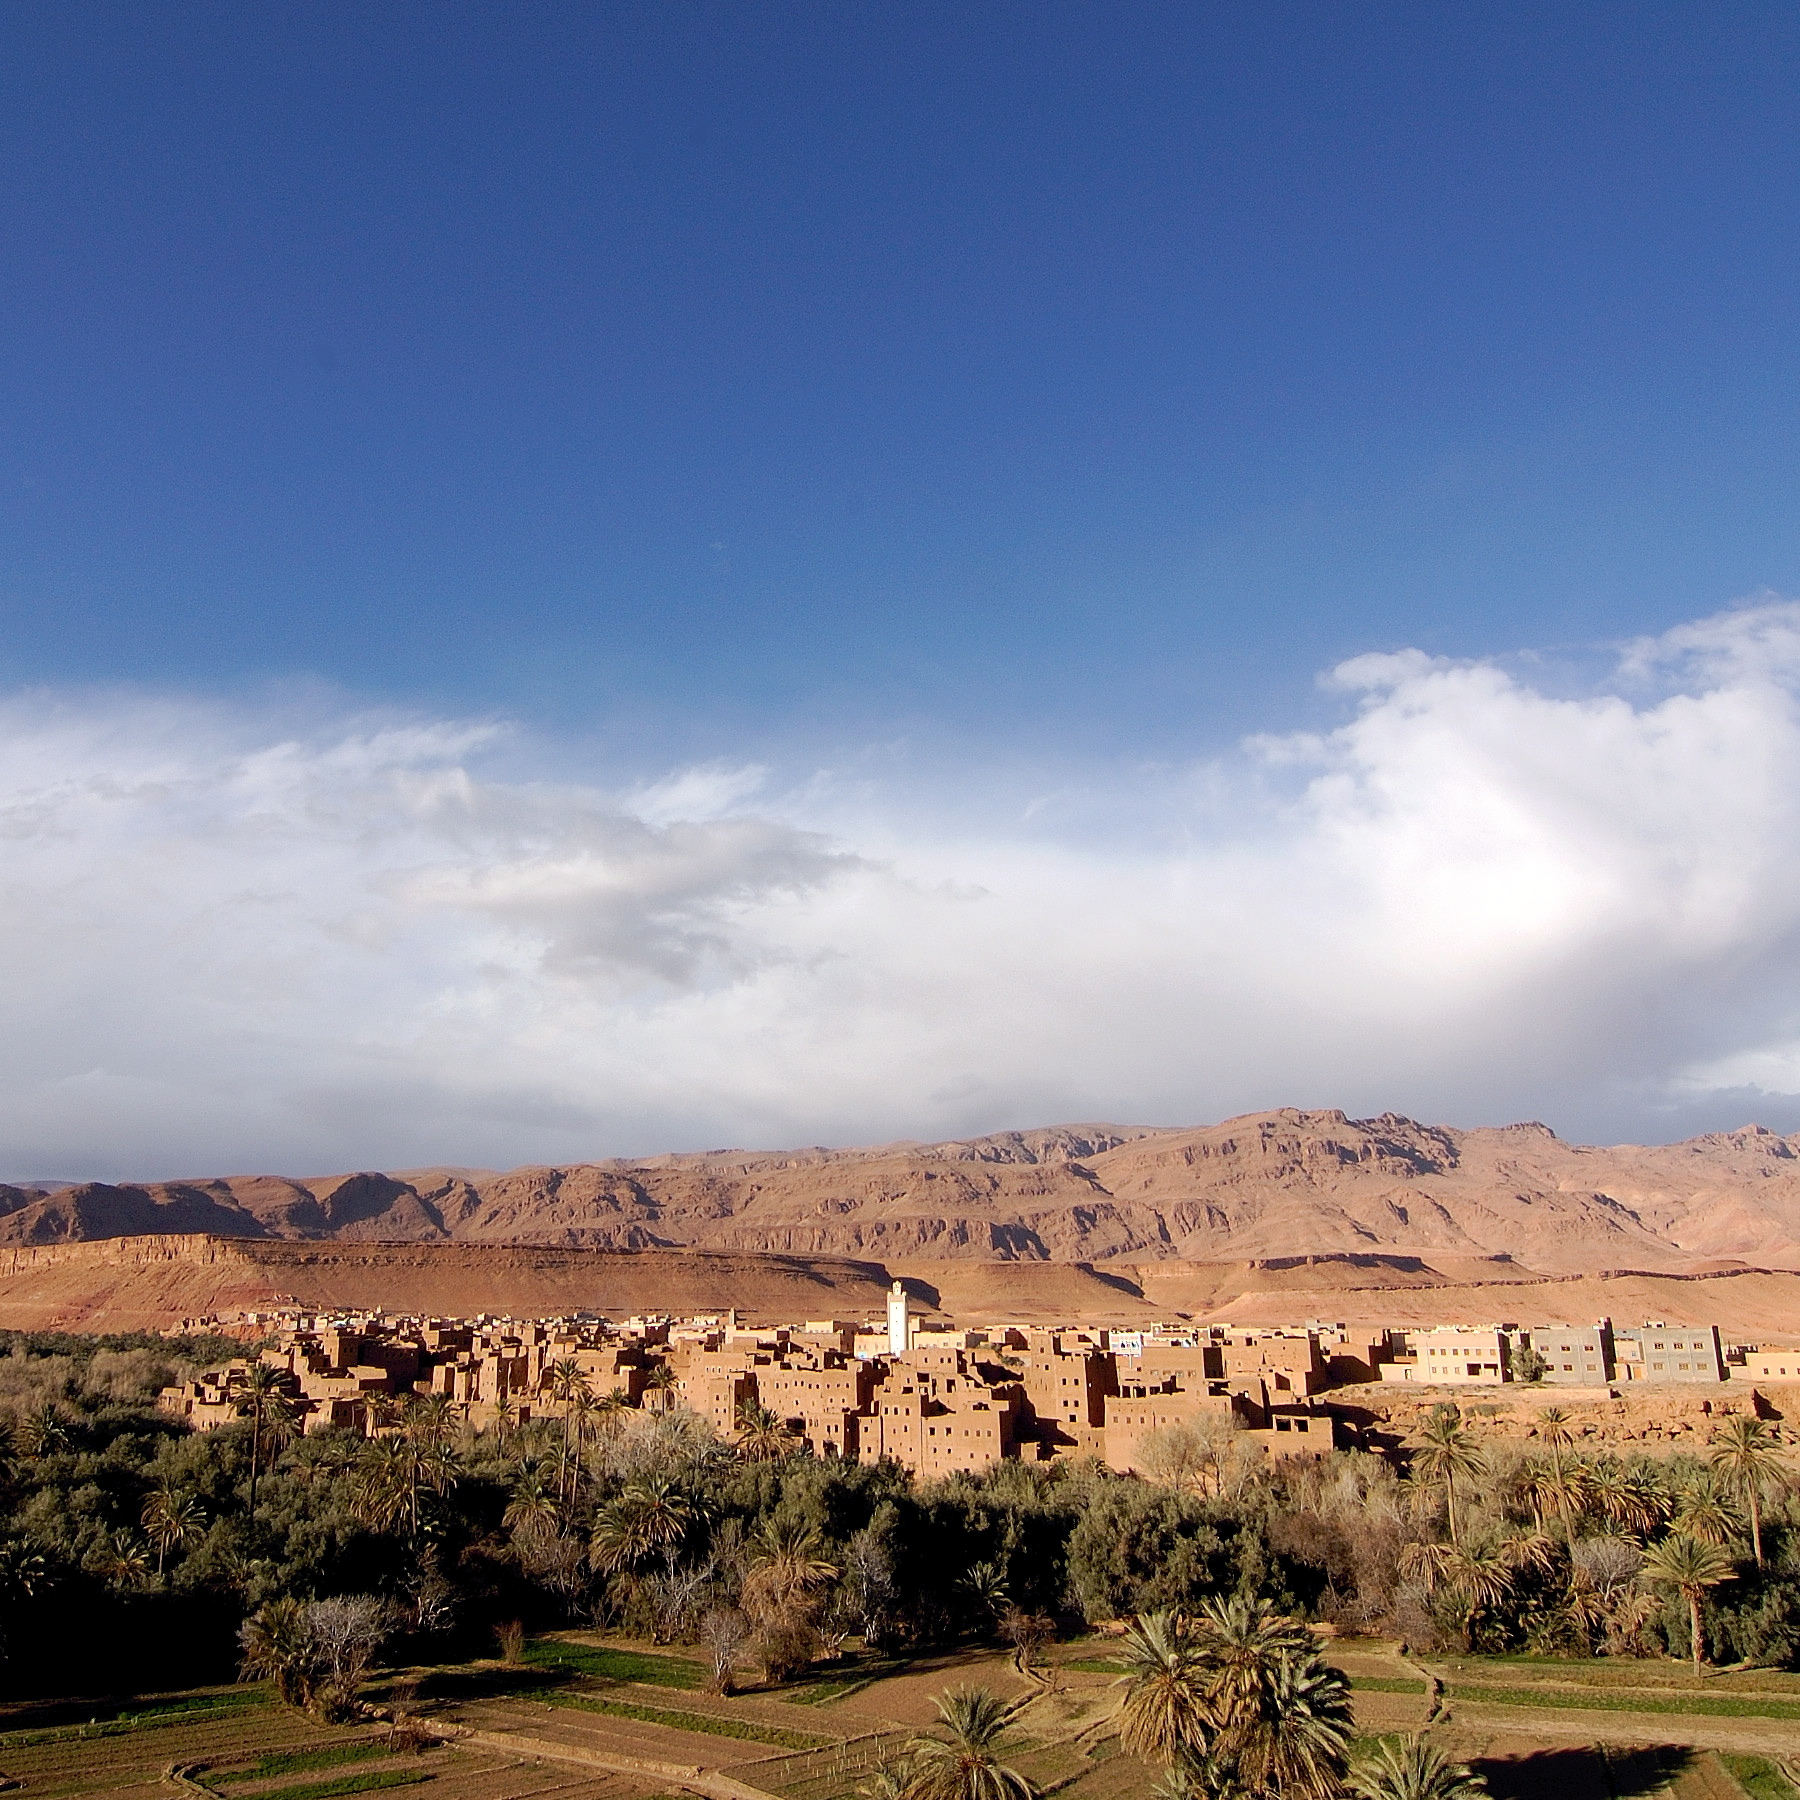 http://upload.wikimedia.org/wikipedia/commons/1/1d/Morocco_Africa_Flickr_Rosino_December_2005_83957092.jpg